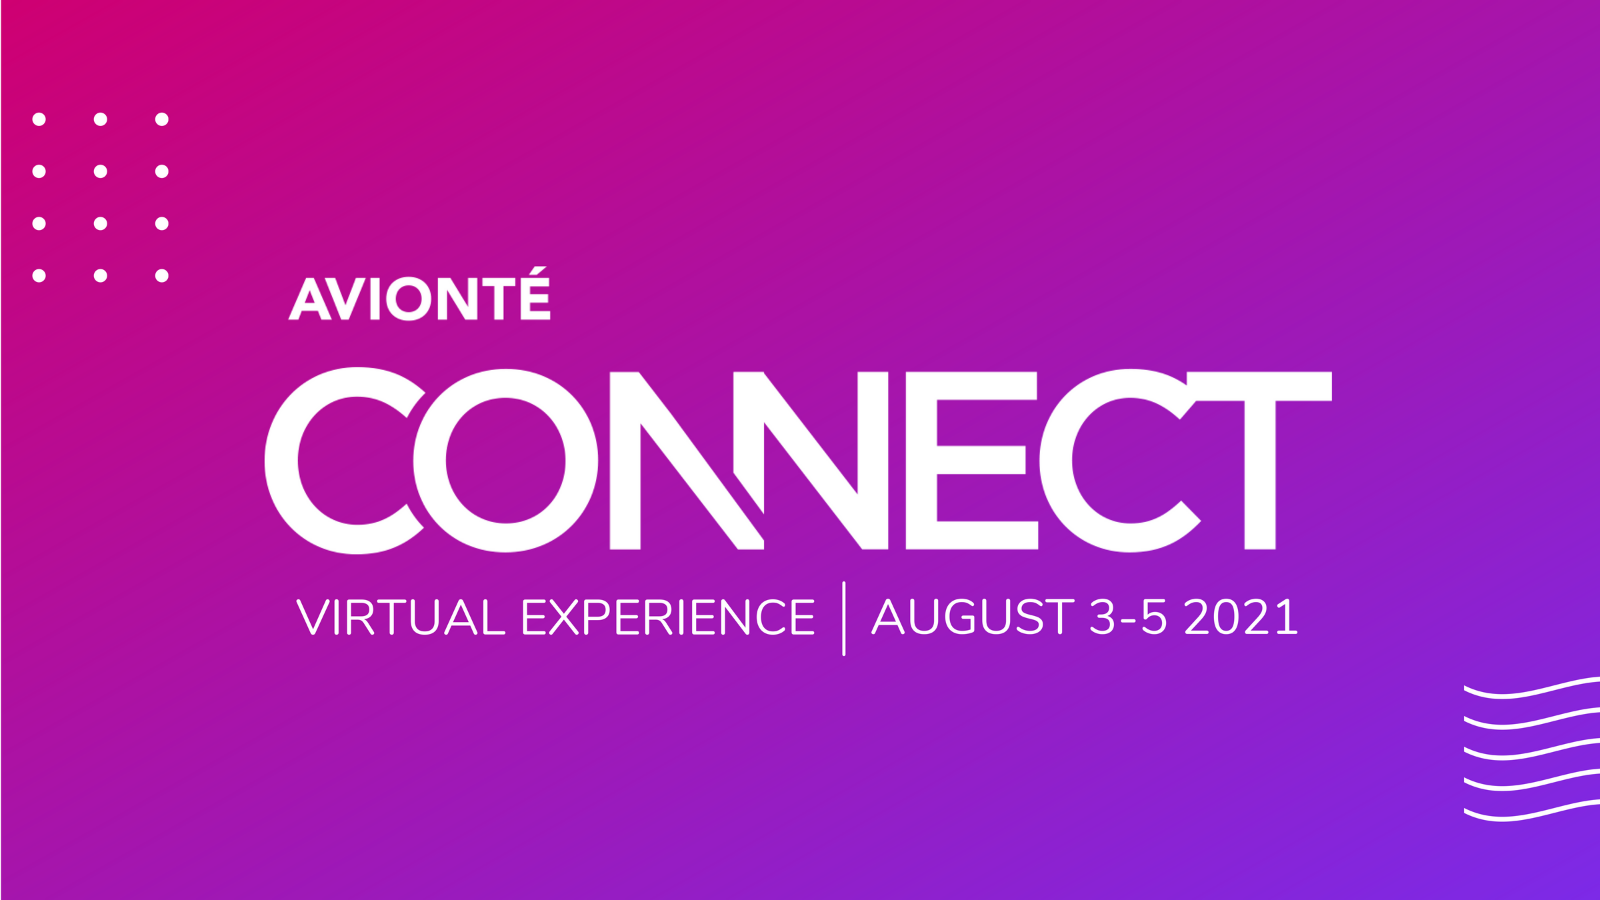 Join Able for Avionte CONNECT on August 3-5